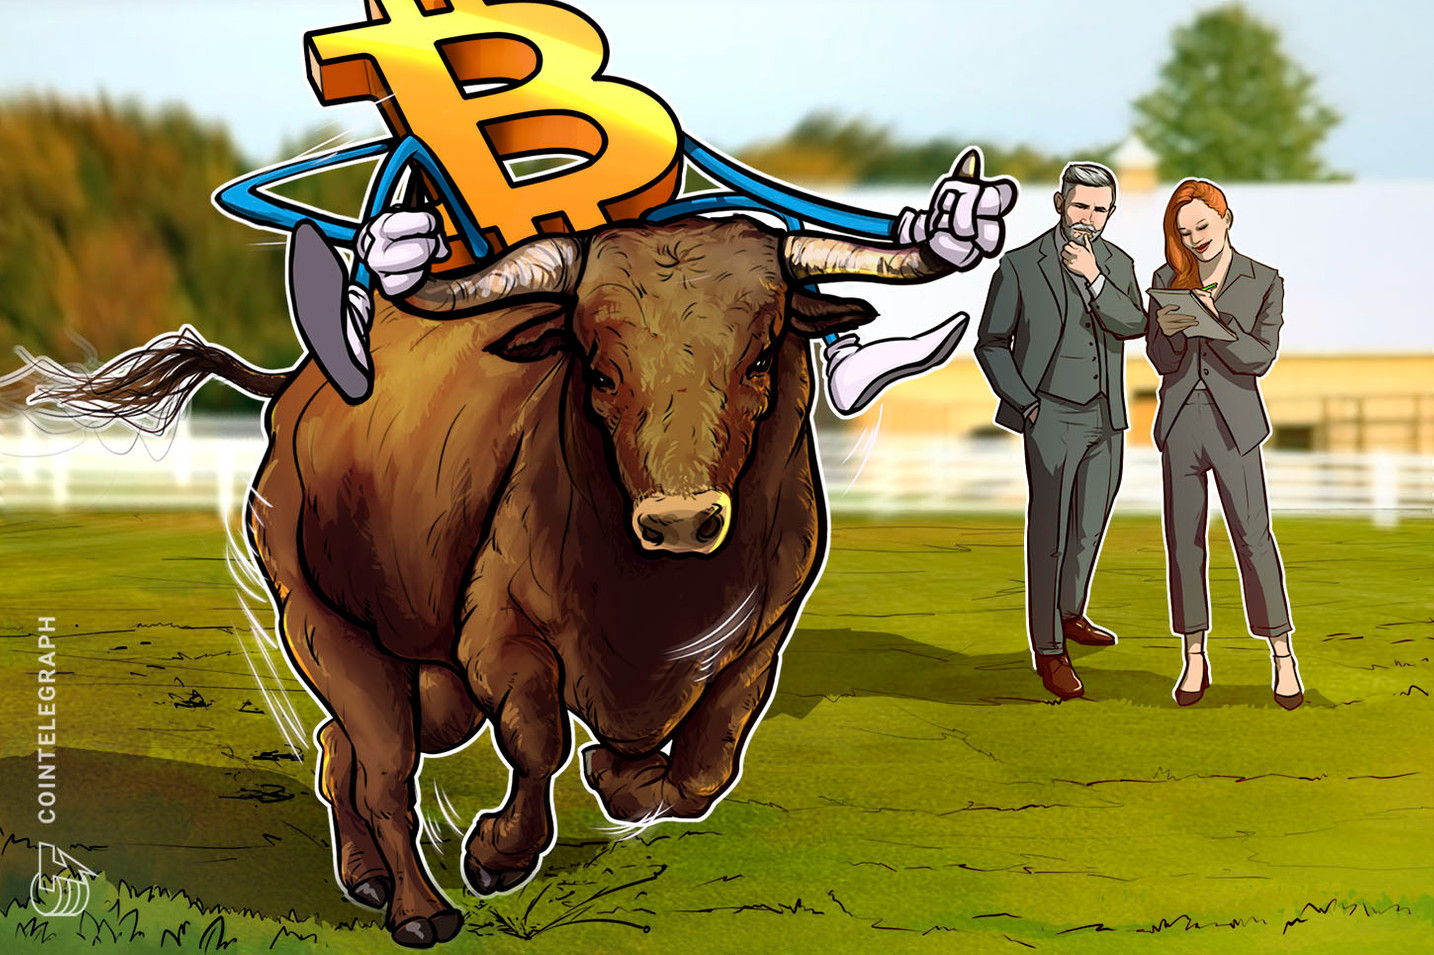 Bitcoin price weekly outlook: BTC bulls await breakout above 50-day EMA